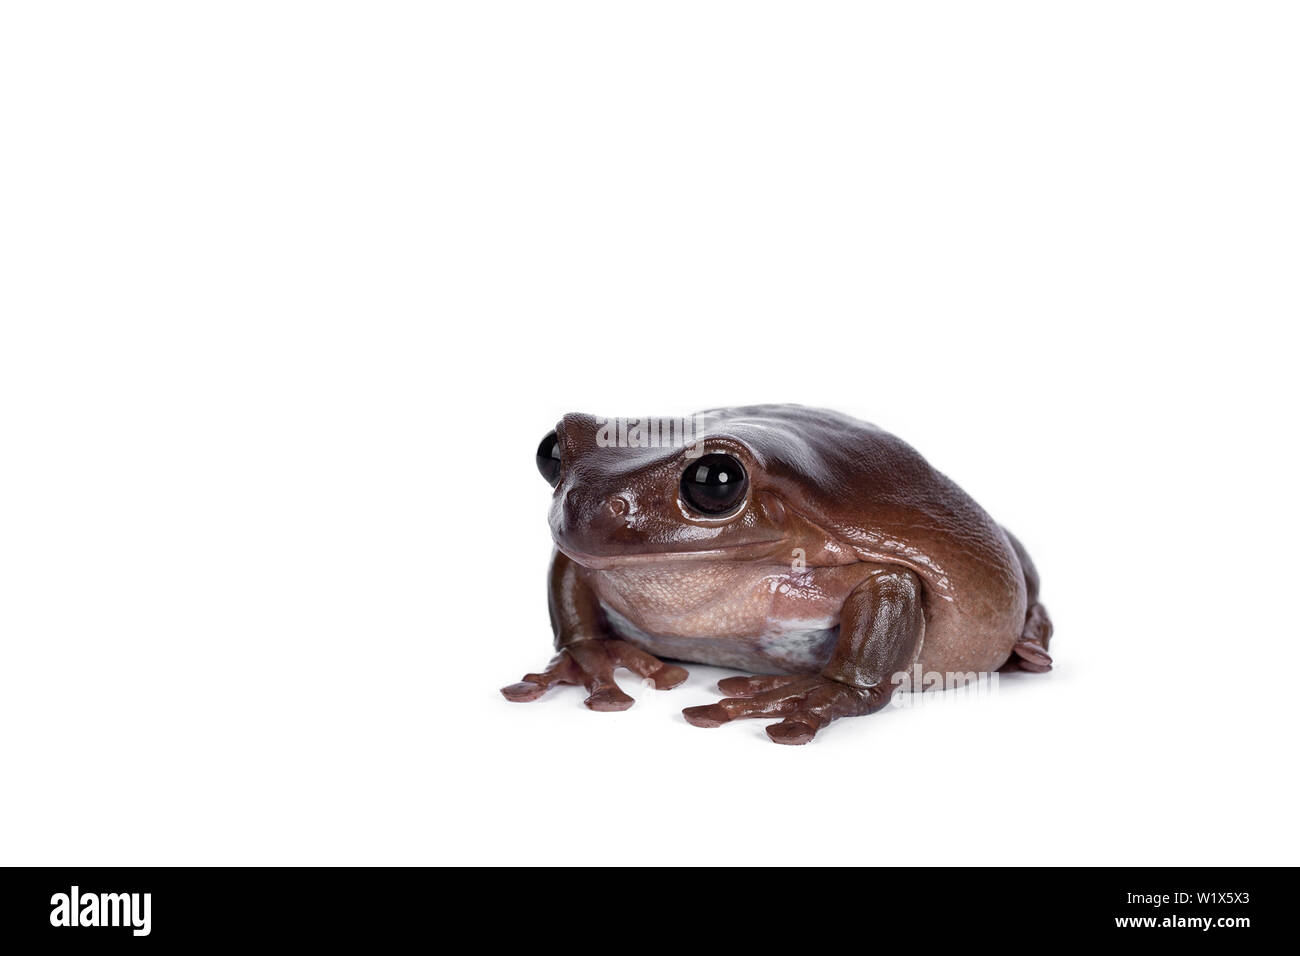 Cute brownish Australian green tree frog sitting side wards, looking straight ahead. Isolated on white background. Stock Photo